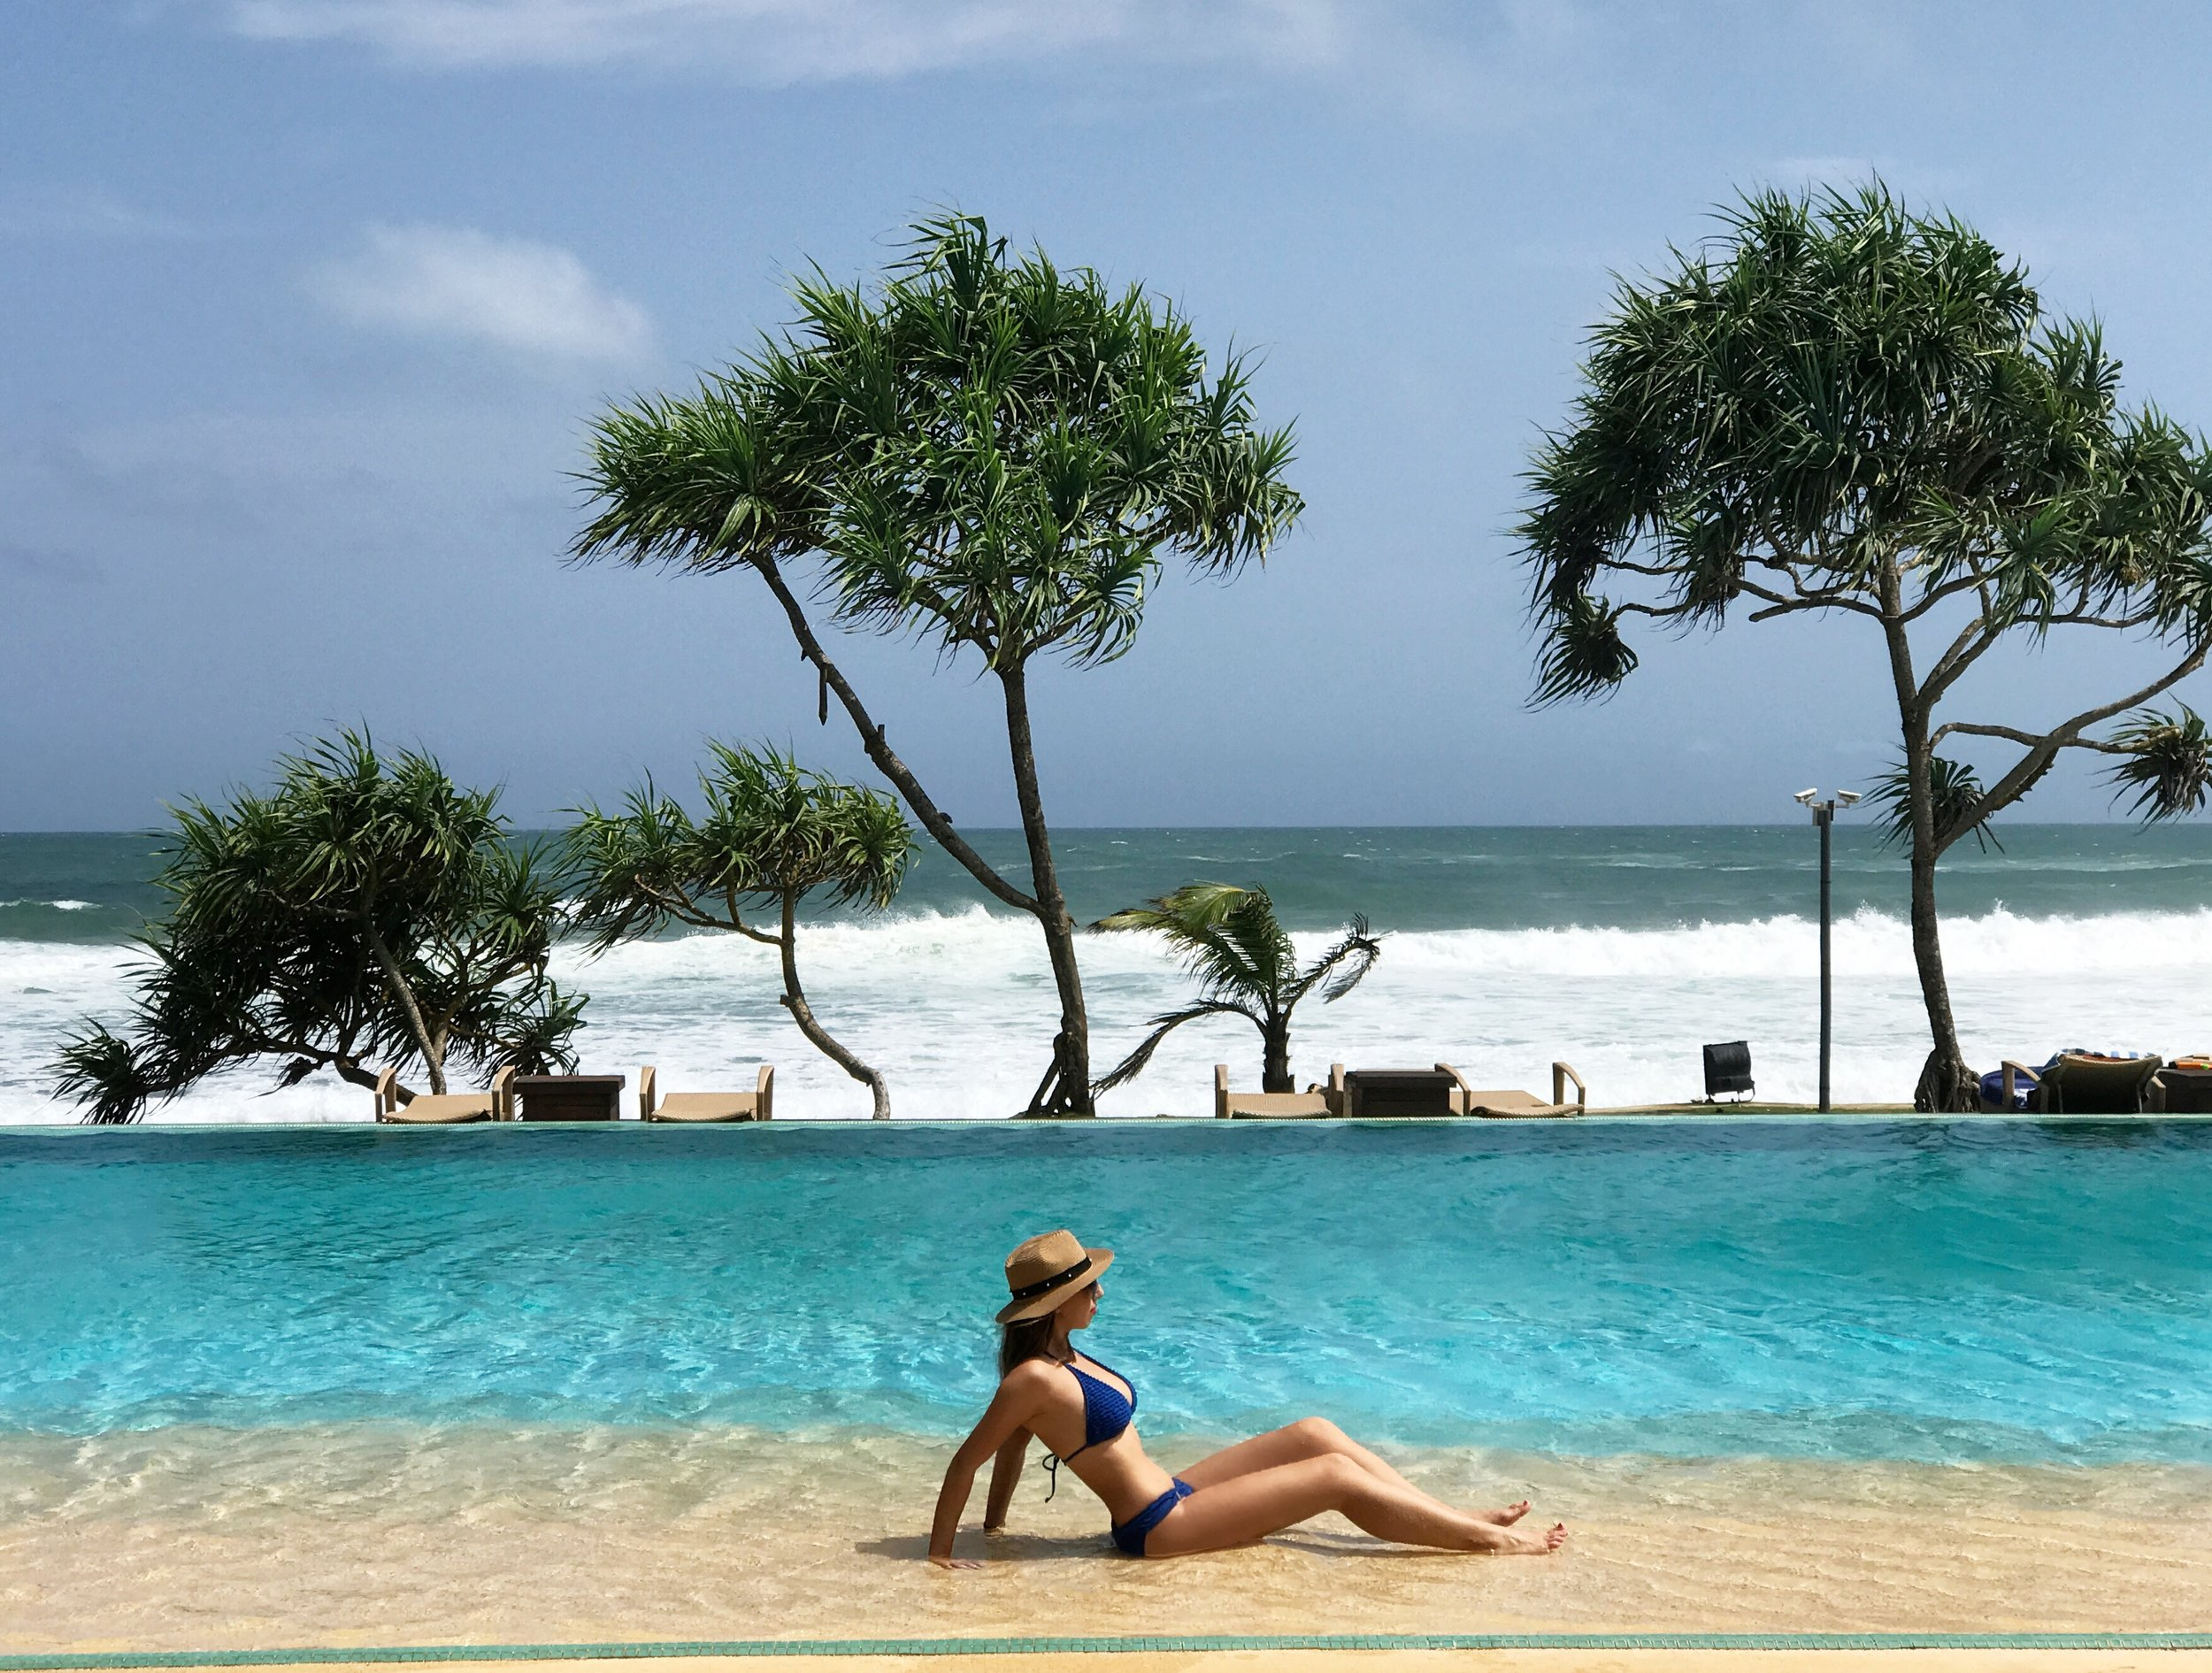 STAY: The Fortress Resort & Spa Sri Lanka